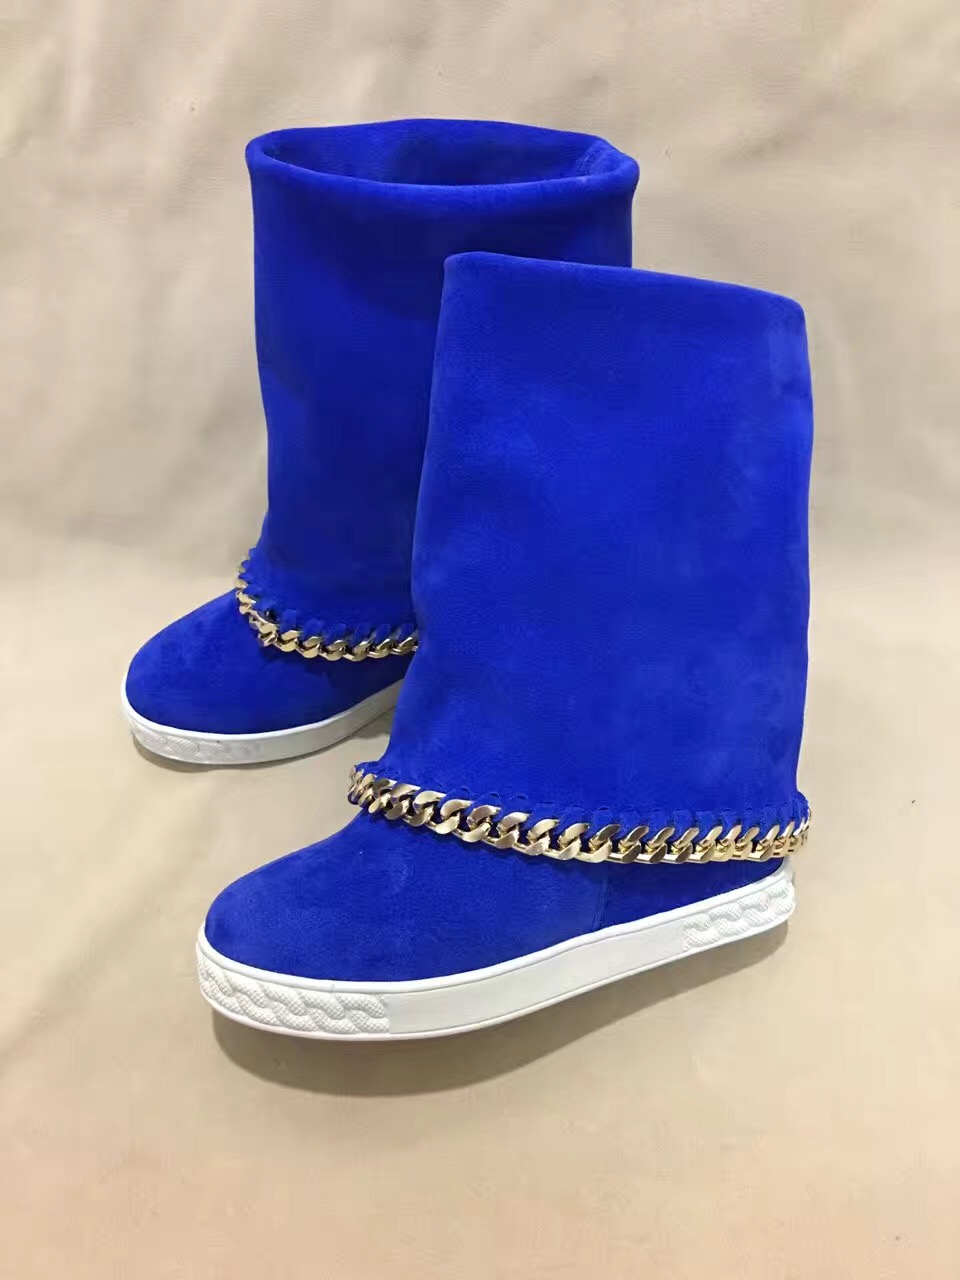 Hot Blue Suede Leather Women Chain Rim Mid-Calf Boots Round Toe Ladies Inside Wedge Heel Boots Slip On High Heel Boot Size 41 high heel slip on rivet wedge peep toe mid calf boots extreme height increasing fashion summer stud muffin women shoes black